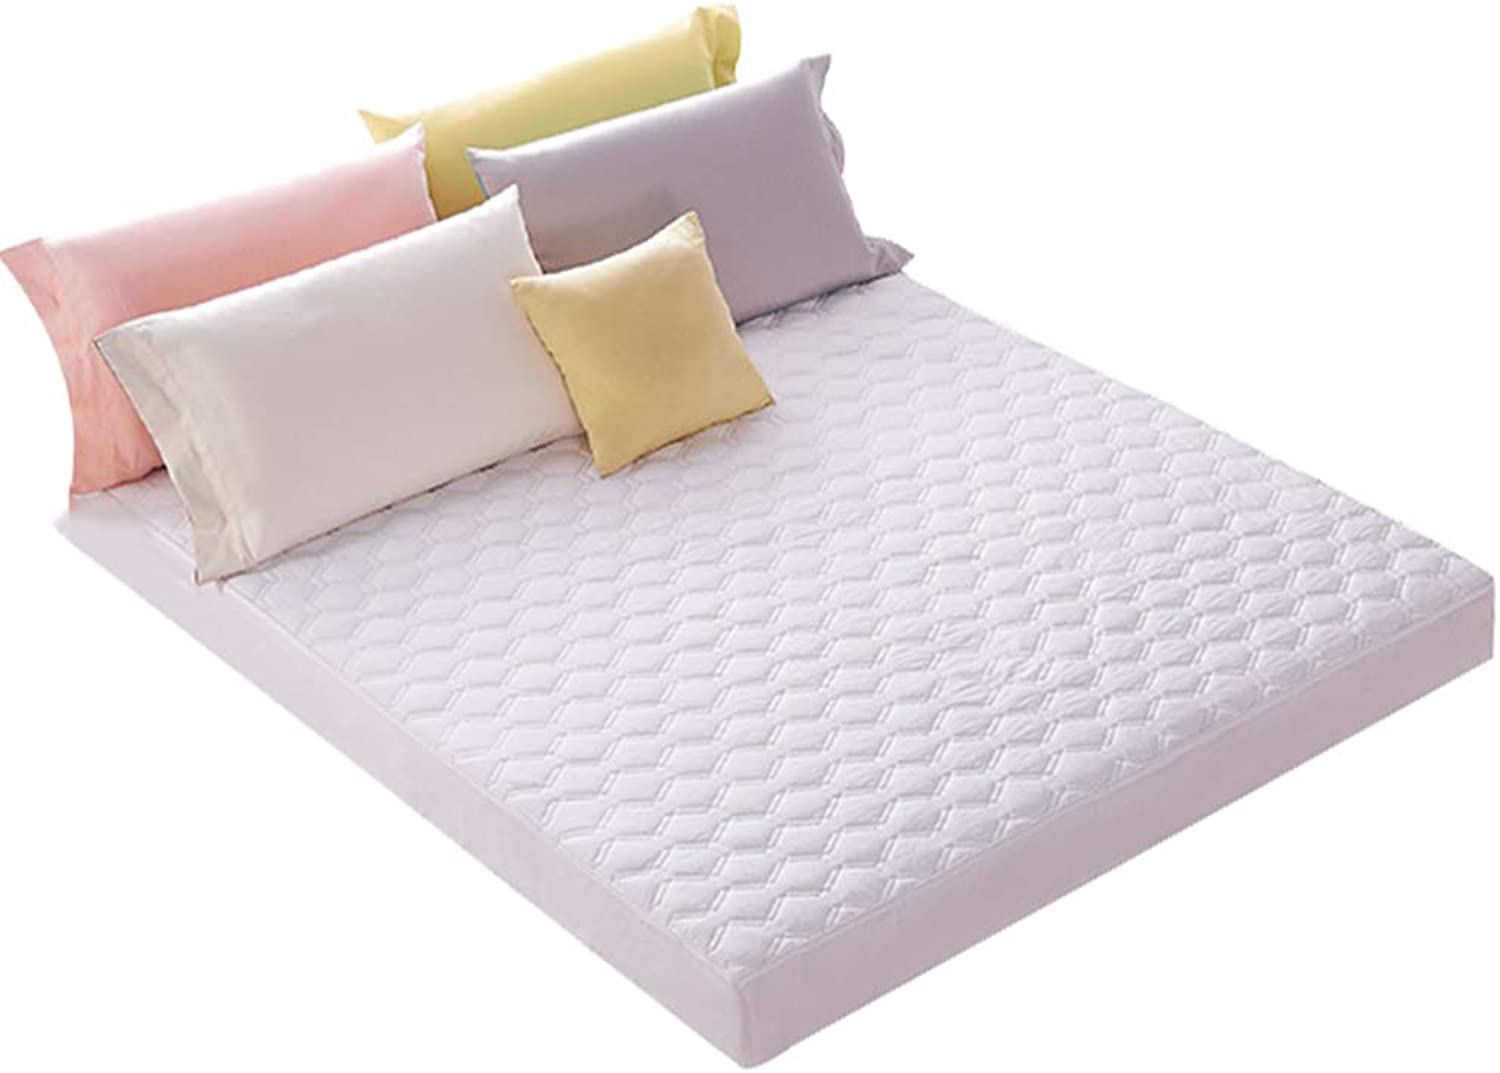 ZHAOHUI Mattress Predector Cotton Hypoallergenic Breathable Anti-mite Quilted Noiseless Keep Warm Soft Skin-Friendly, 4 colors, 4 Sizes (color   White, Size   120X200cm)